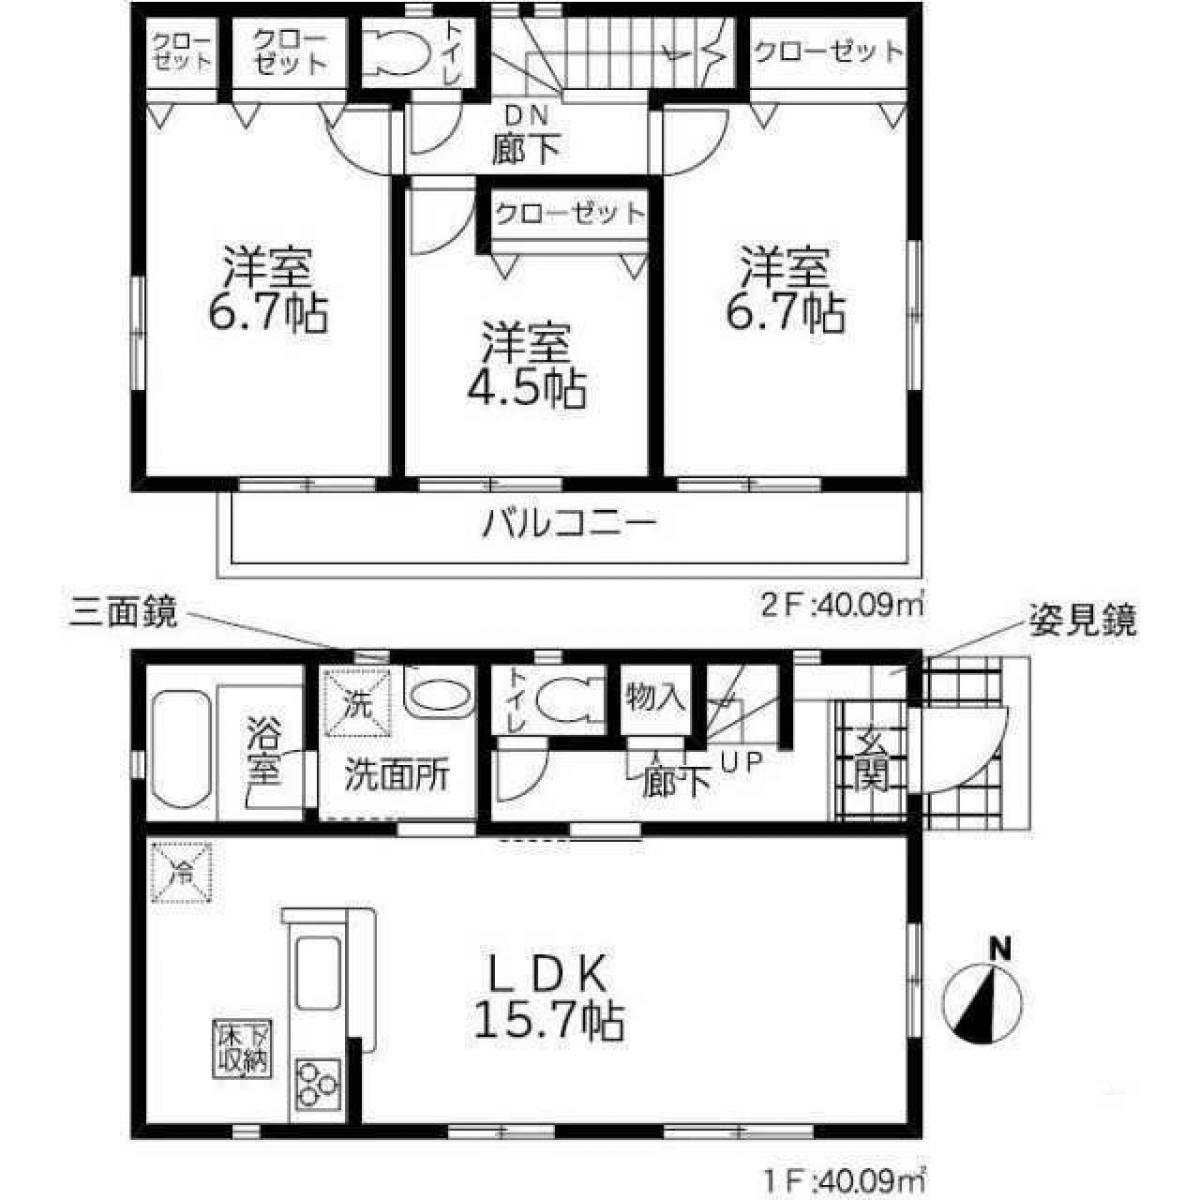 Property listed For Sale in Kakuda Shi, Japan